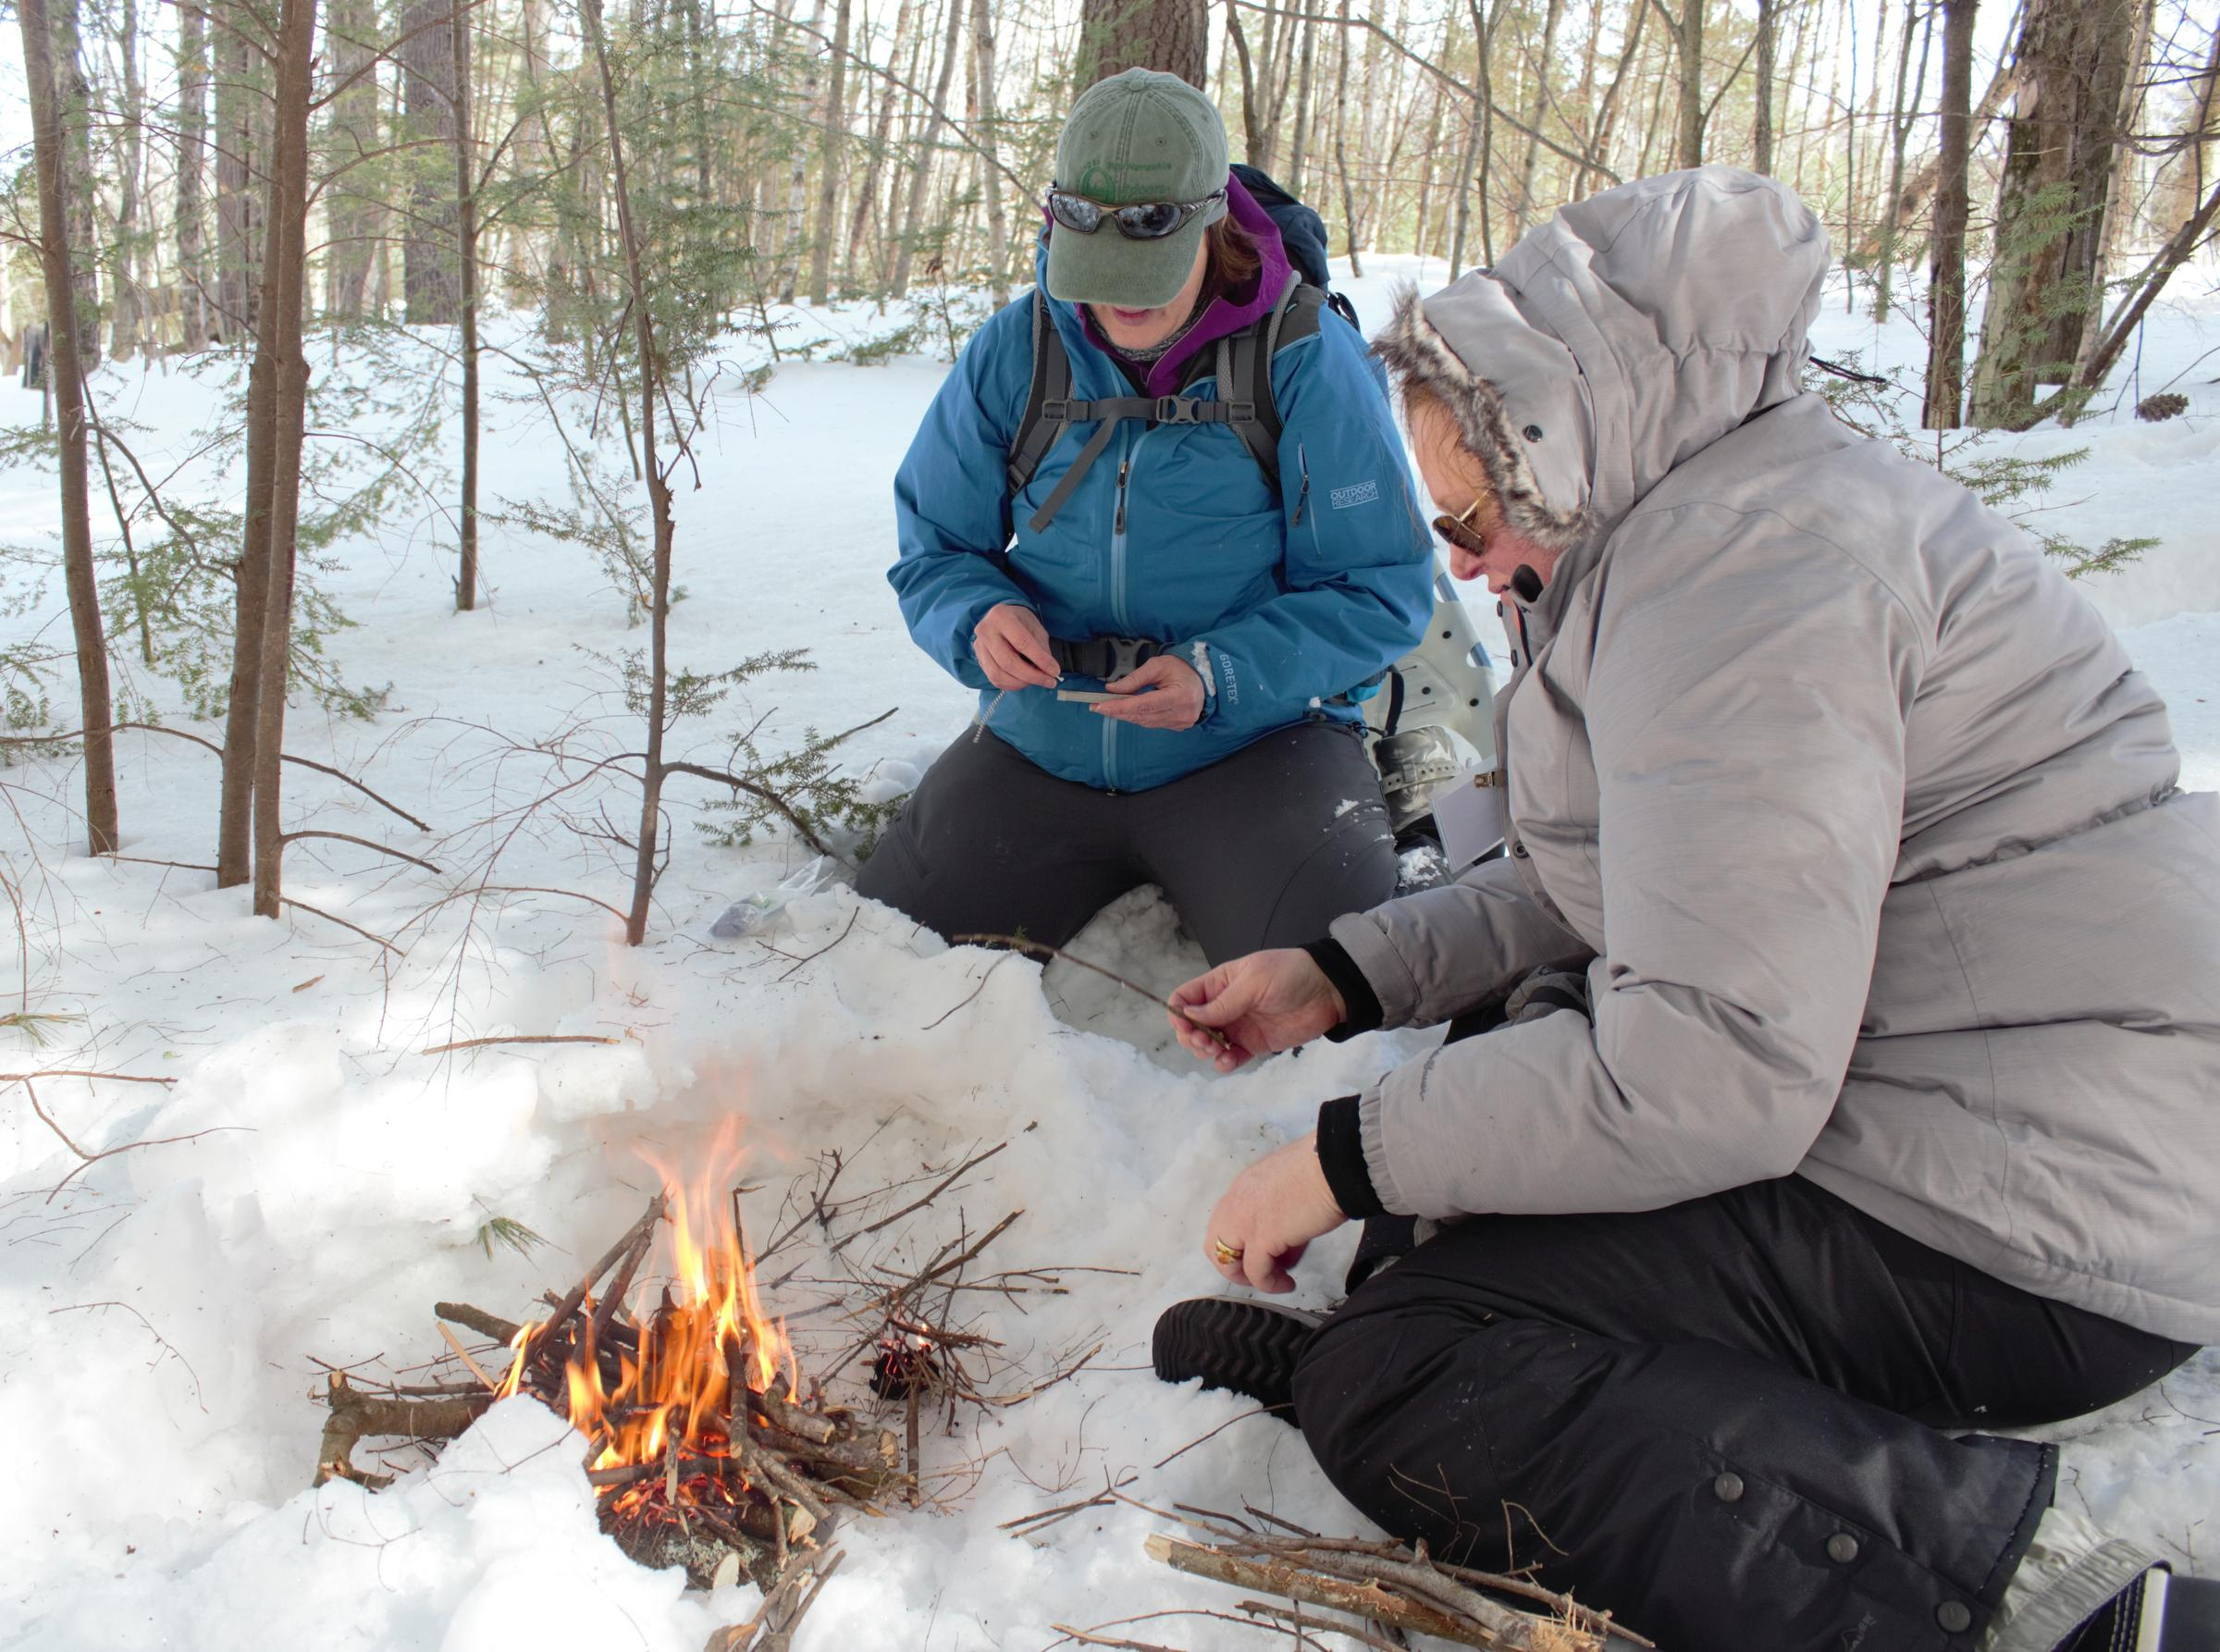 Julia Wilcox and Claire Rouge tend to a fire they made during BOW's winter survival skills class. Photo by Annie Ropeik for NHPR